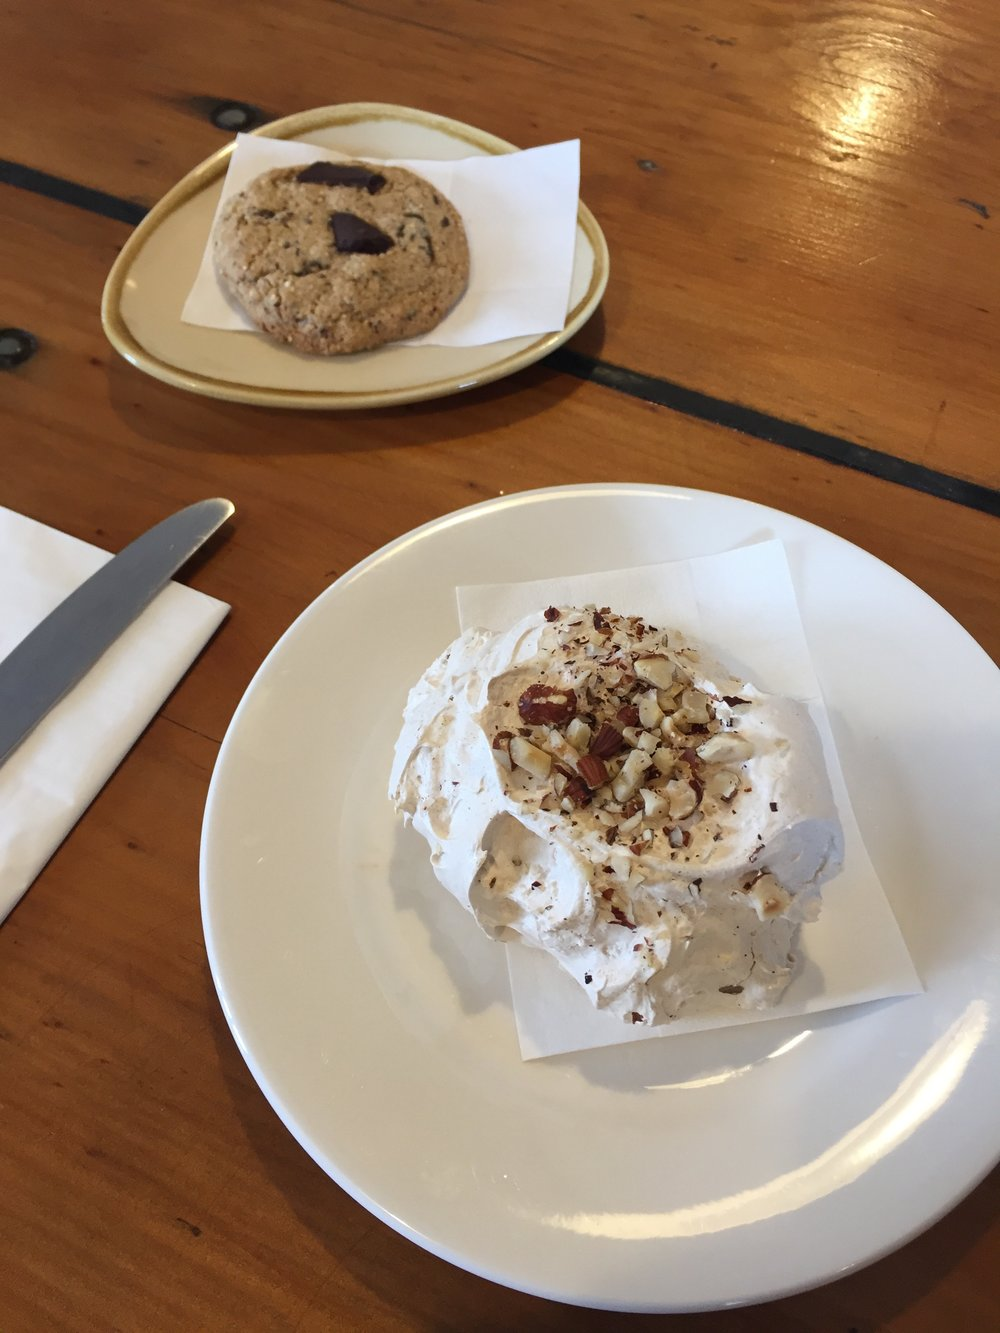 Meringue & GF Quinoa Choc Chip Cookie